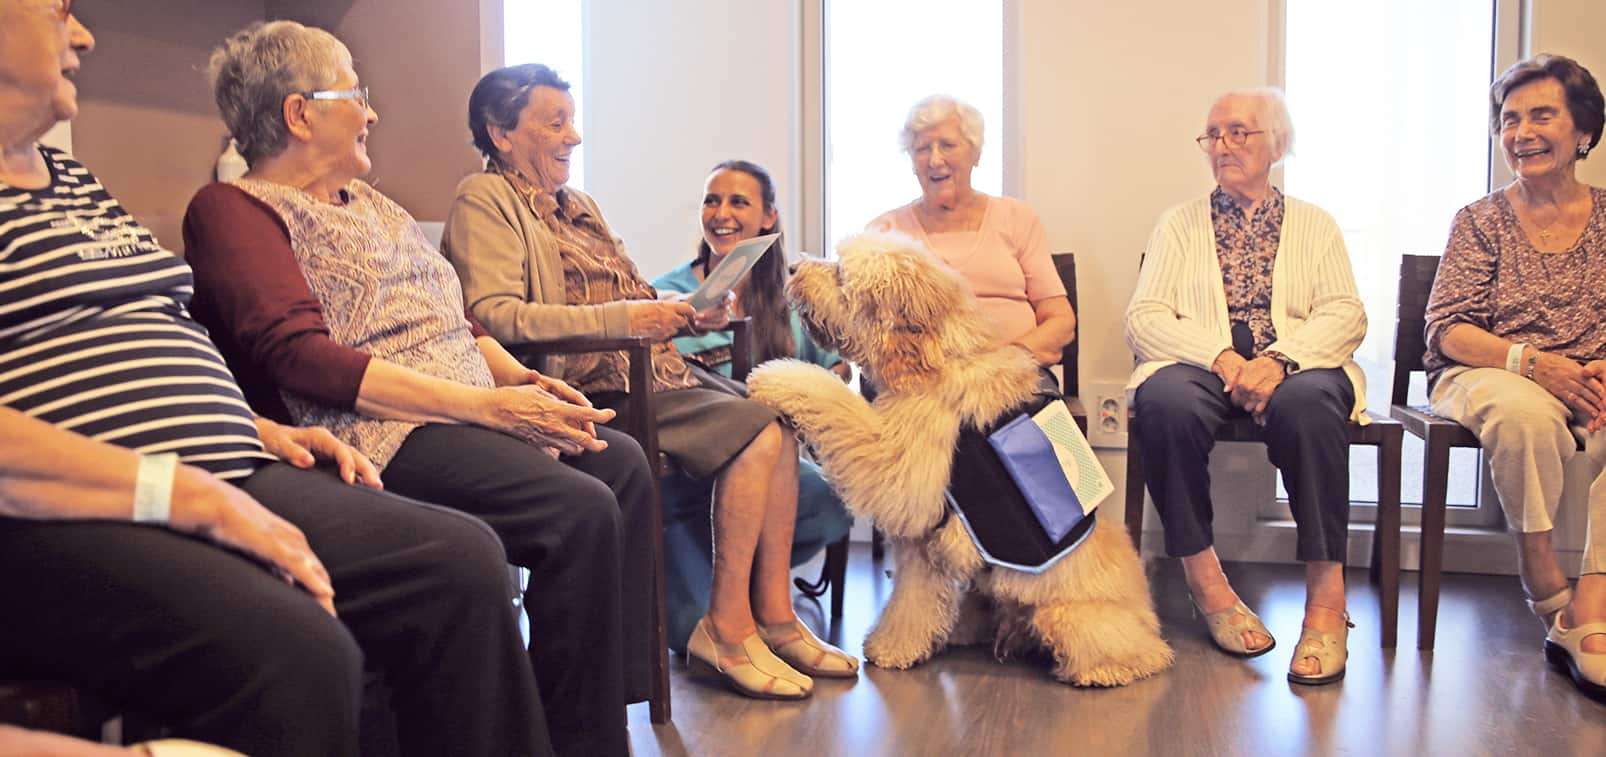 An ideal temperament to be a family dog and to become a therapy or assistance dog. Balanced, gentle, friendly, enthusiastic and empathetic